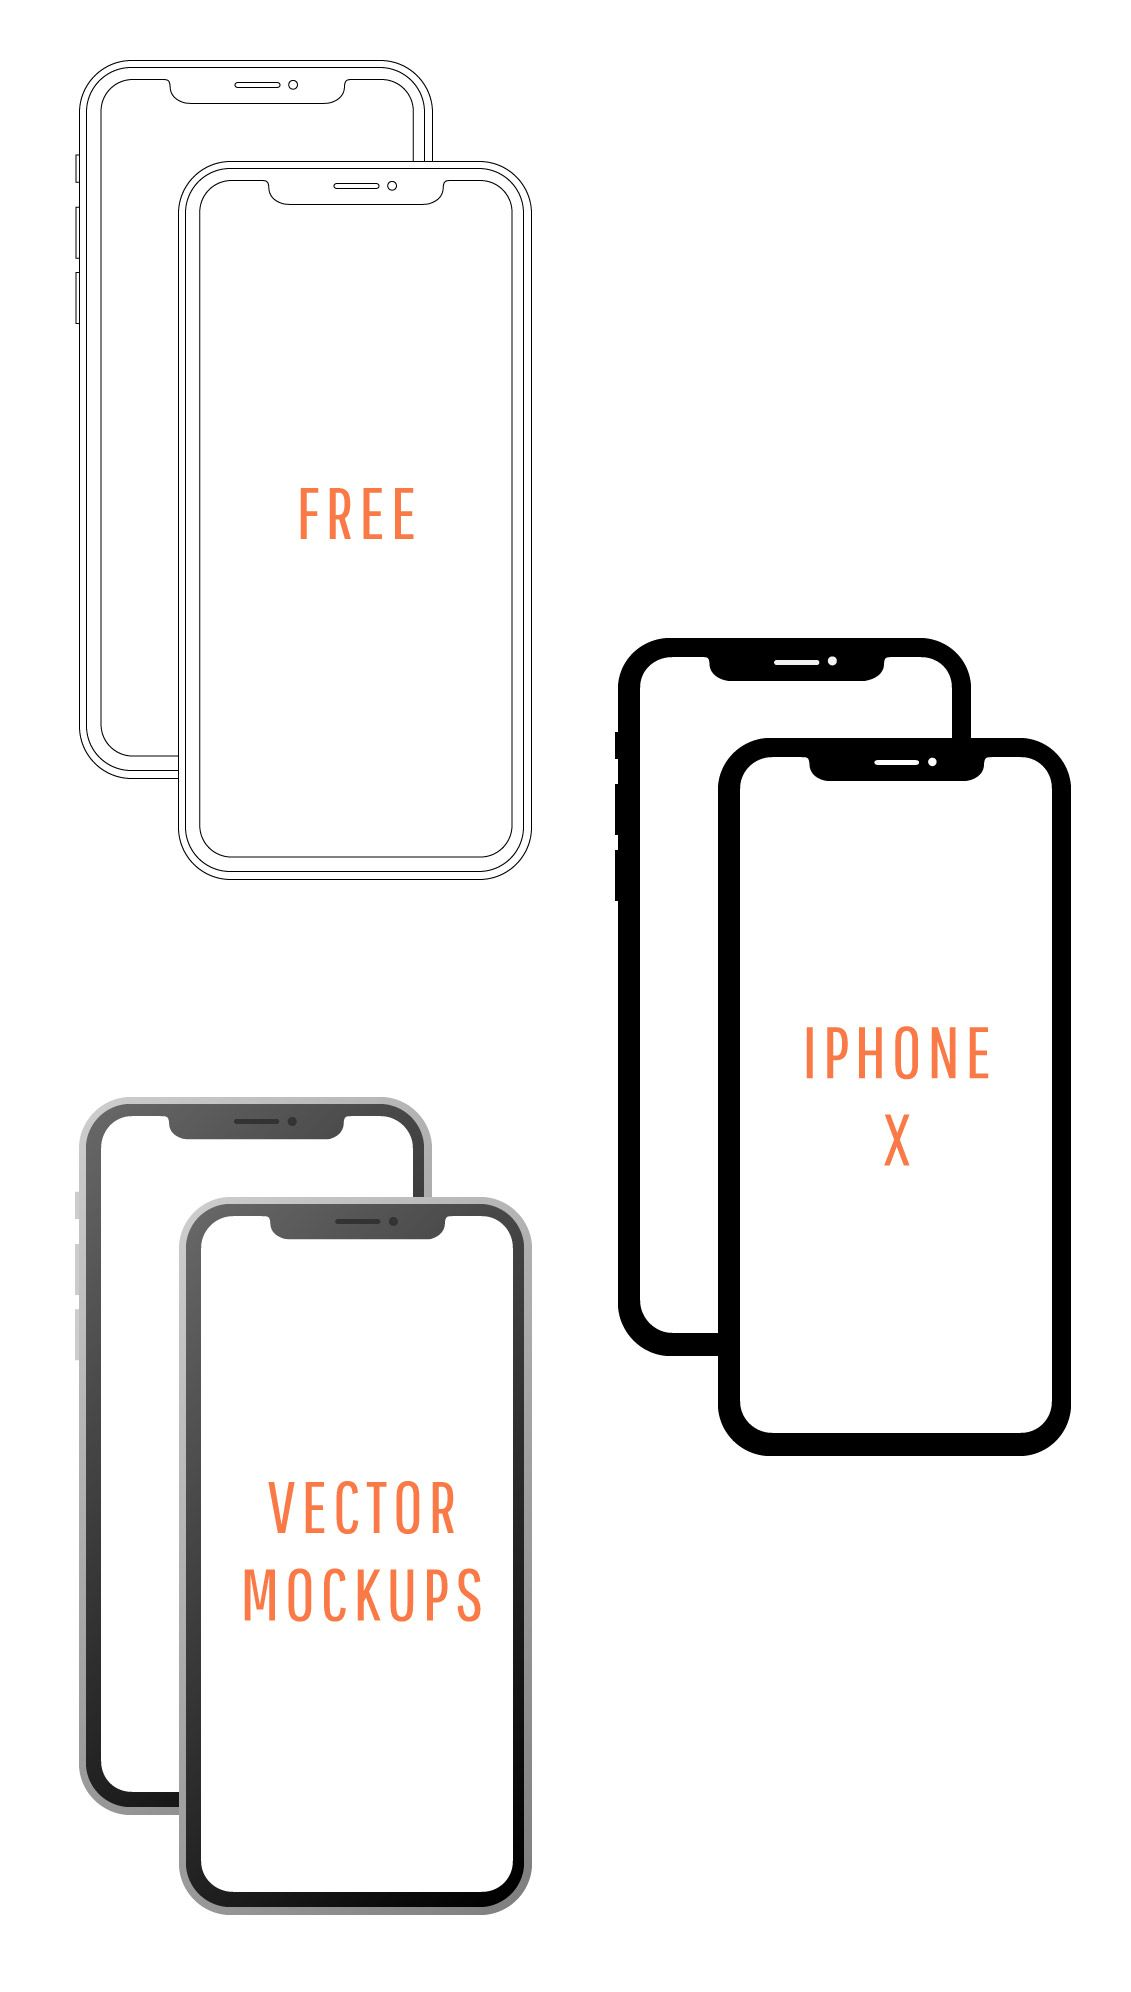 Free iPhone X Vector Mockups Simple, minimal iPhone X ...